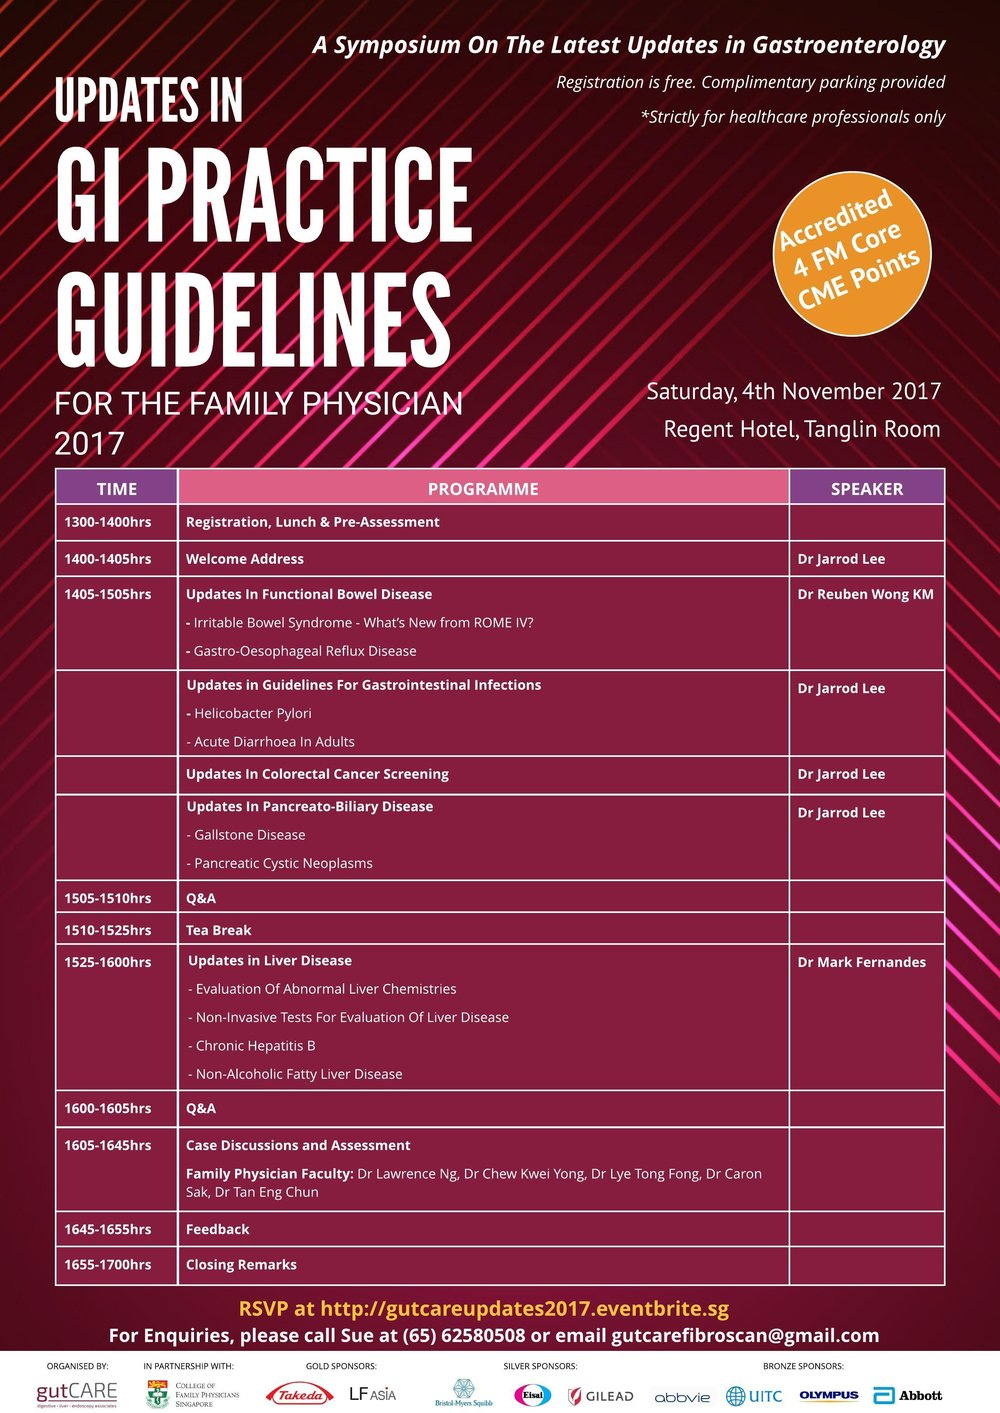 Updates in GI Practice Guidelines for the Family Physician 2017 (7).jpeg